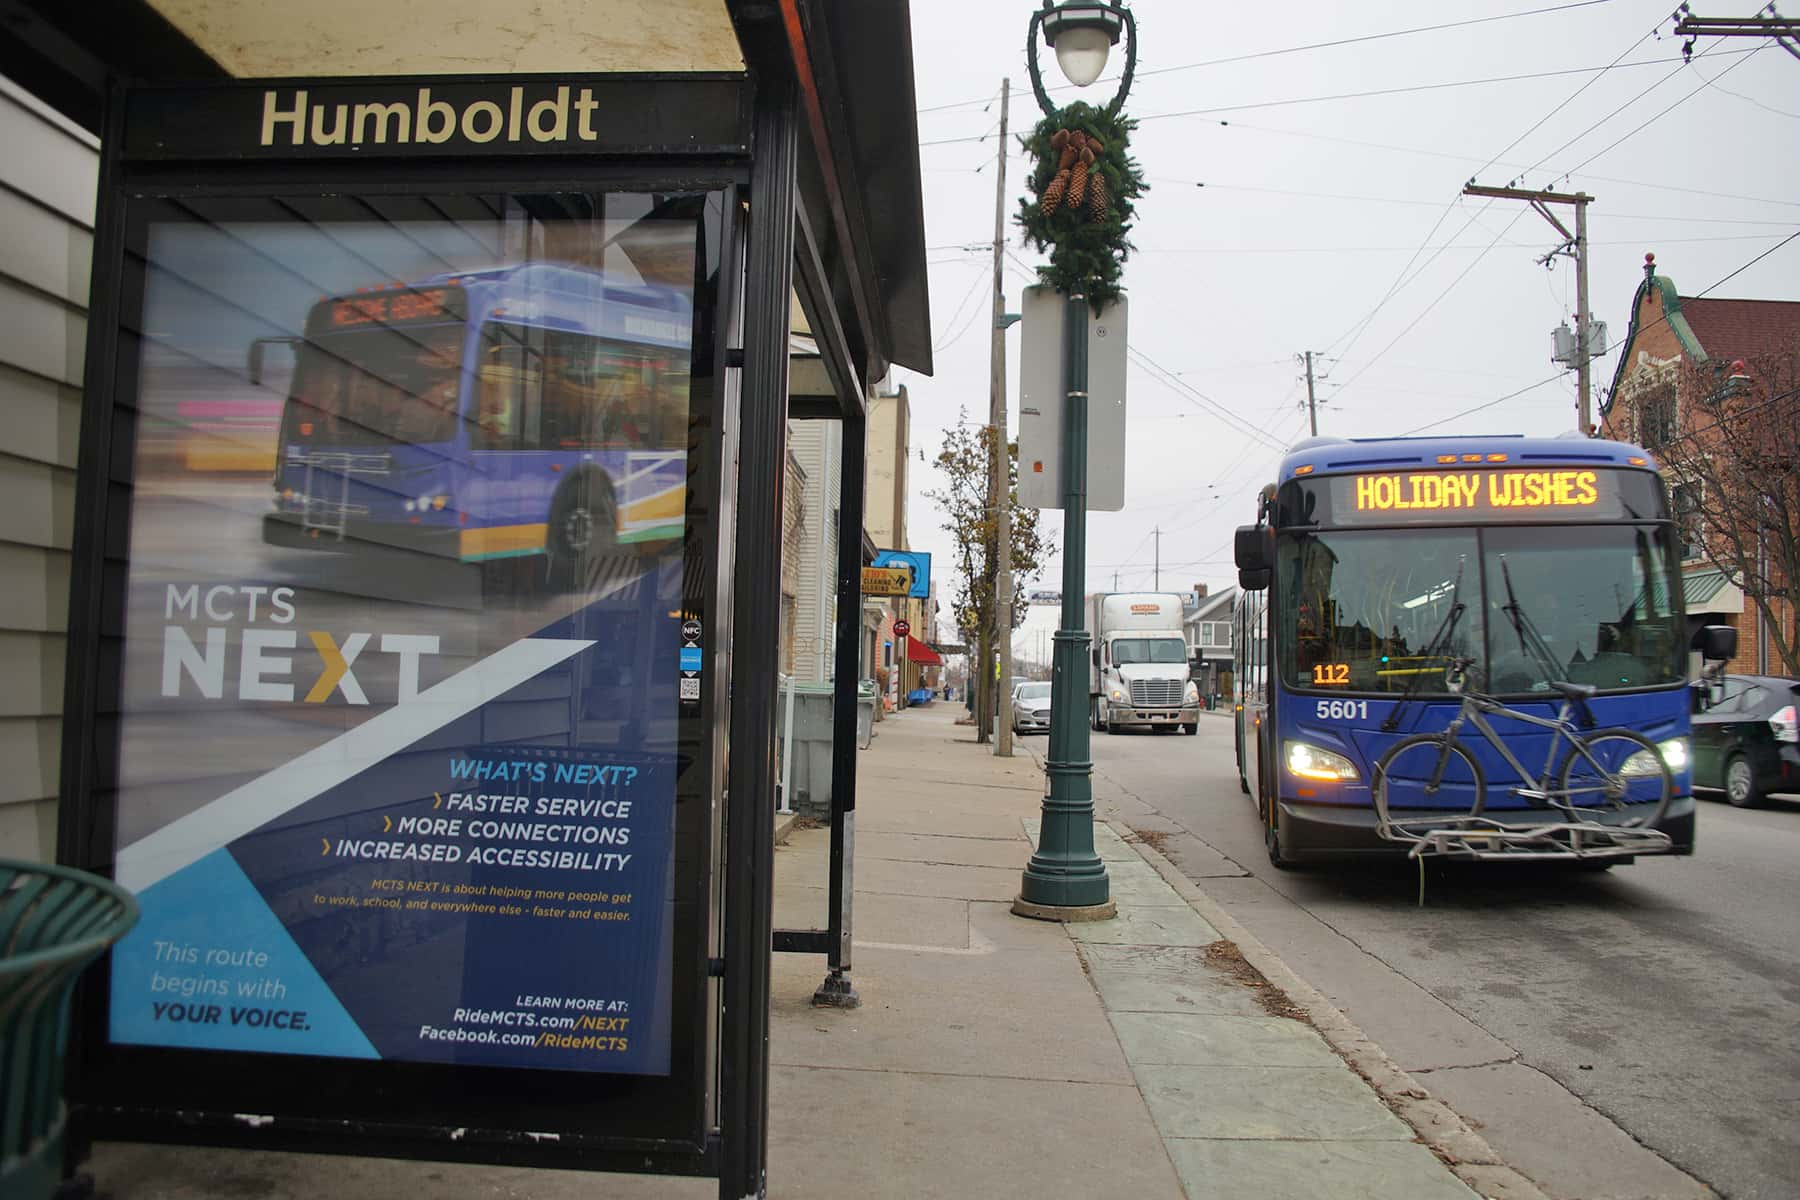 mcts next kicks into high gear with public review of proposed new